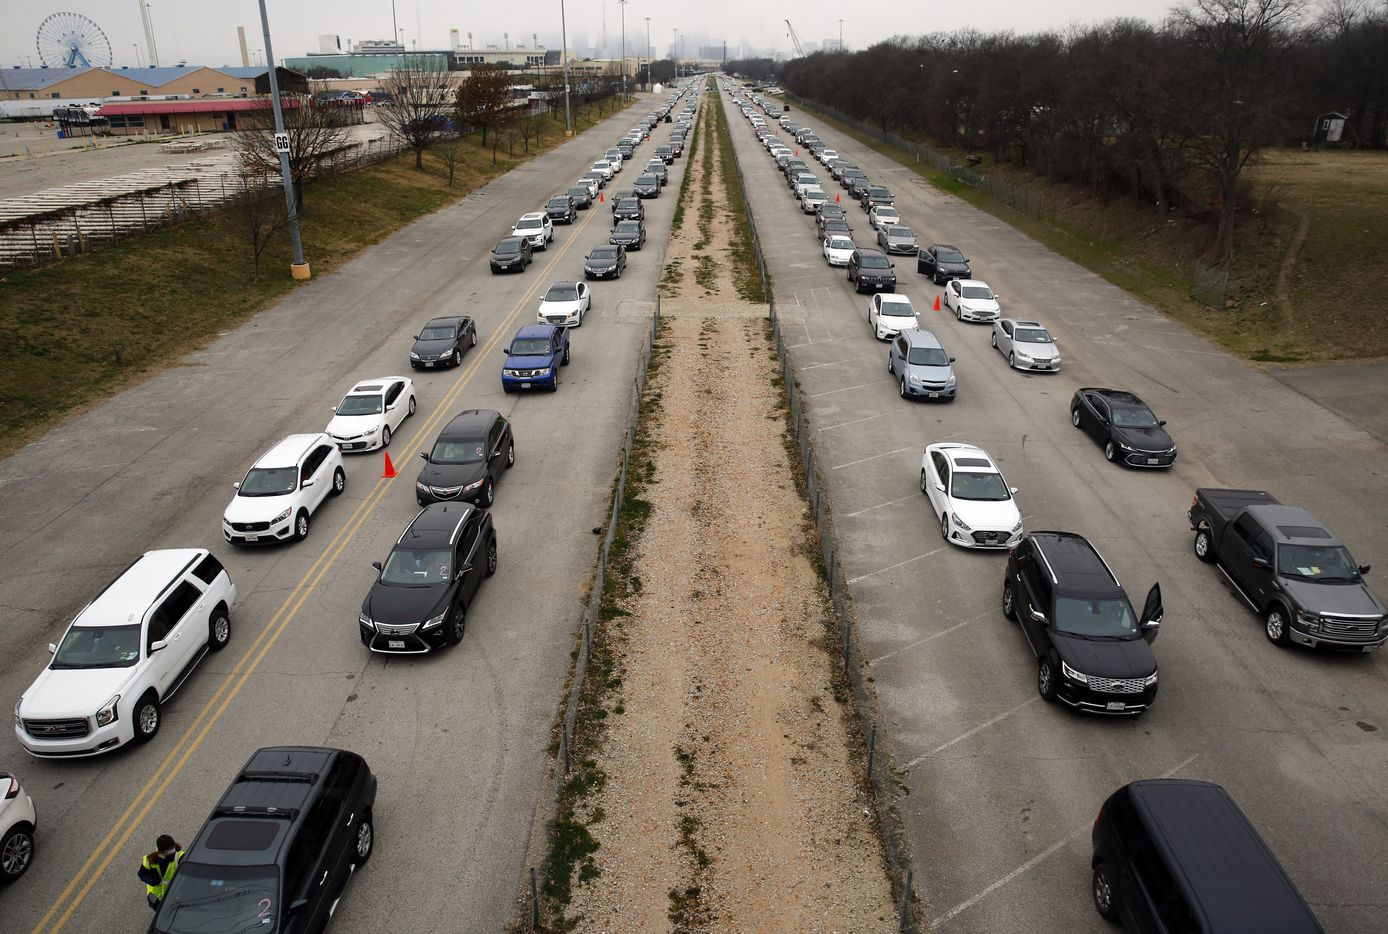 A long line of vehicles line up in Fair Park to receive COVID-19 vaccinations in Dallas, Wednesday, February 10, 2021. Dallas County's mega vaccine site shifted to a drive through model Wednesday, an effort to help move things quicker.  According to a press release, The White House announced today that it is partnering with the State of Texas to build three new major Community Vaccination Centers (CVCs) in Dallas, Arlington, and Houston. The CVCs will be at Fair Park in Dallas, AT&T Stadium in Arlington, and NRG Stadium in Houston.  Together, these sites will be capable of administering more than 10,000 shots in arms a day. (Tom Fox/The Dallas Morning News)